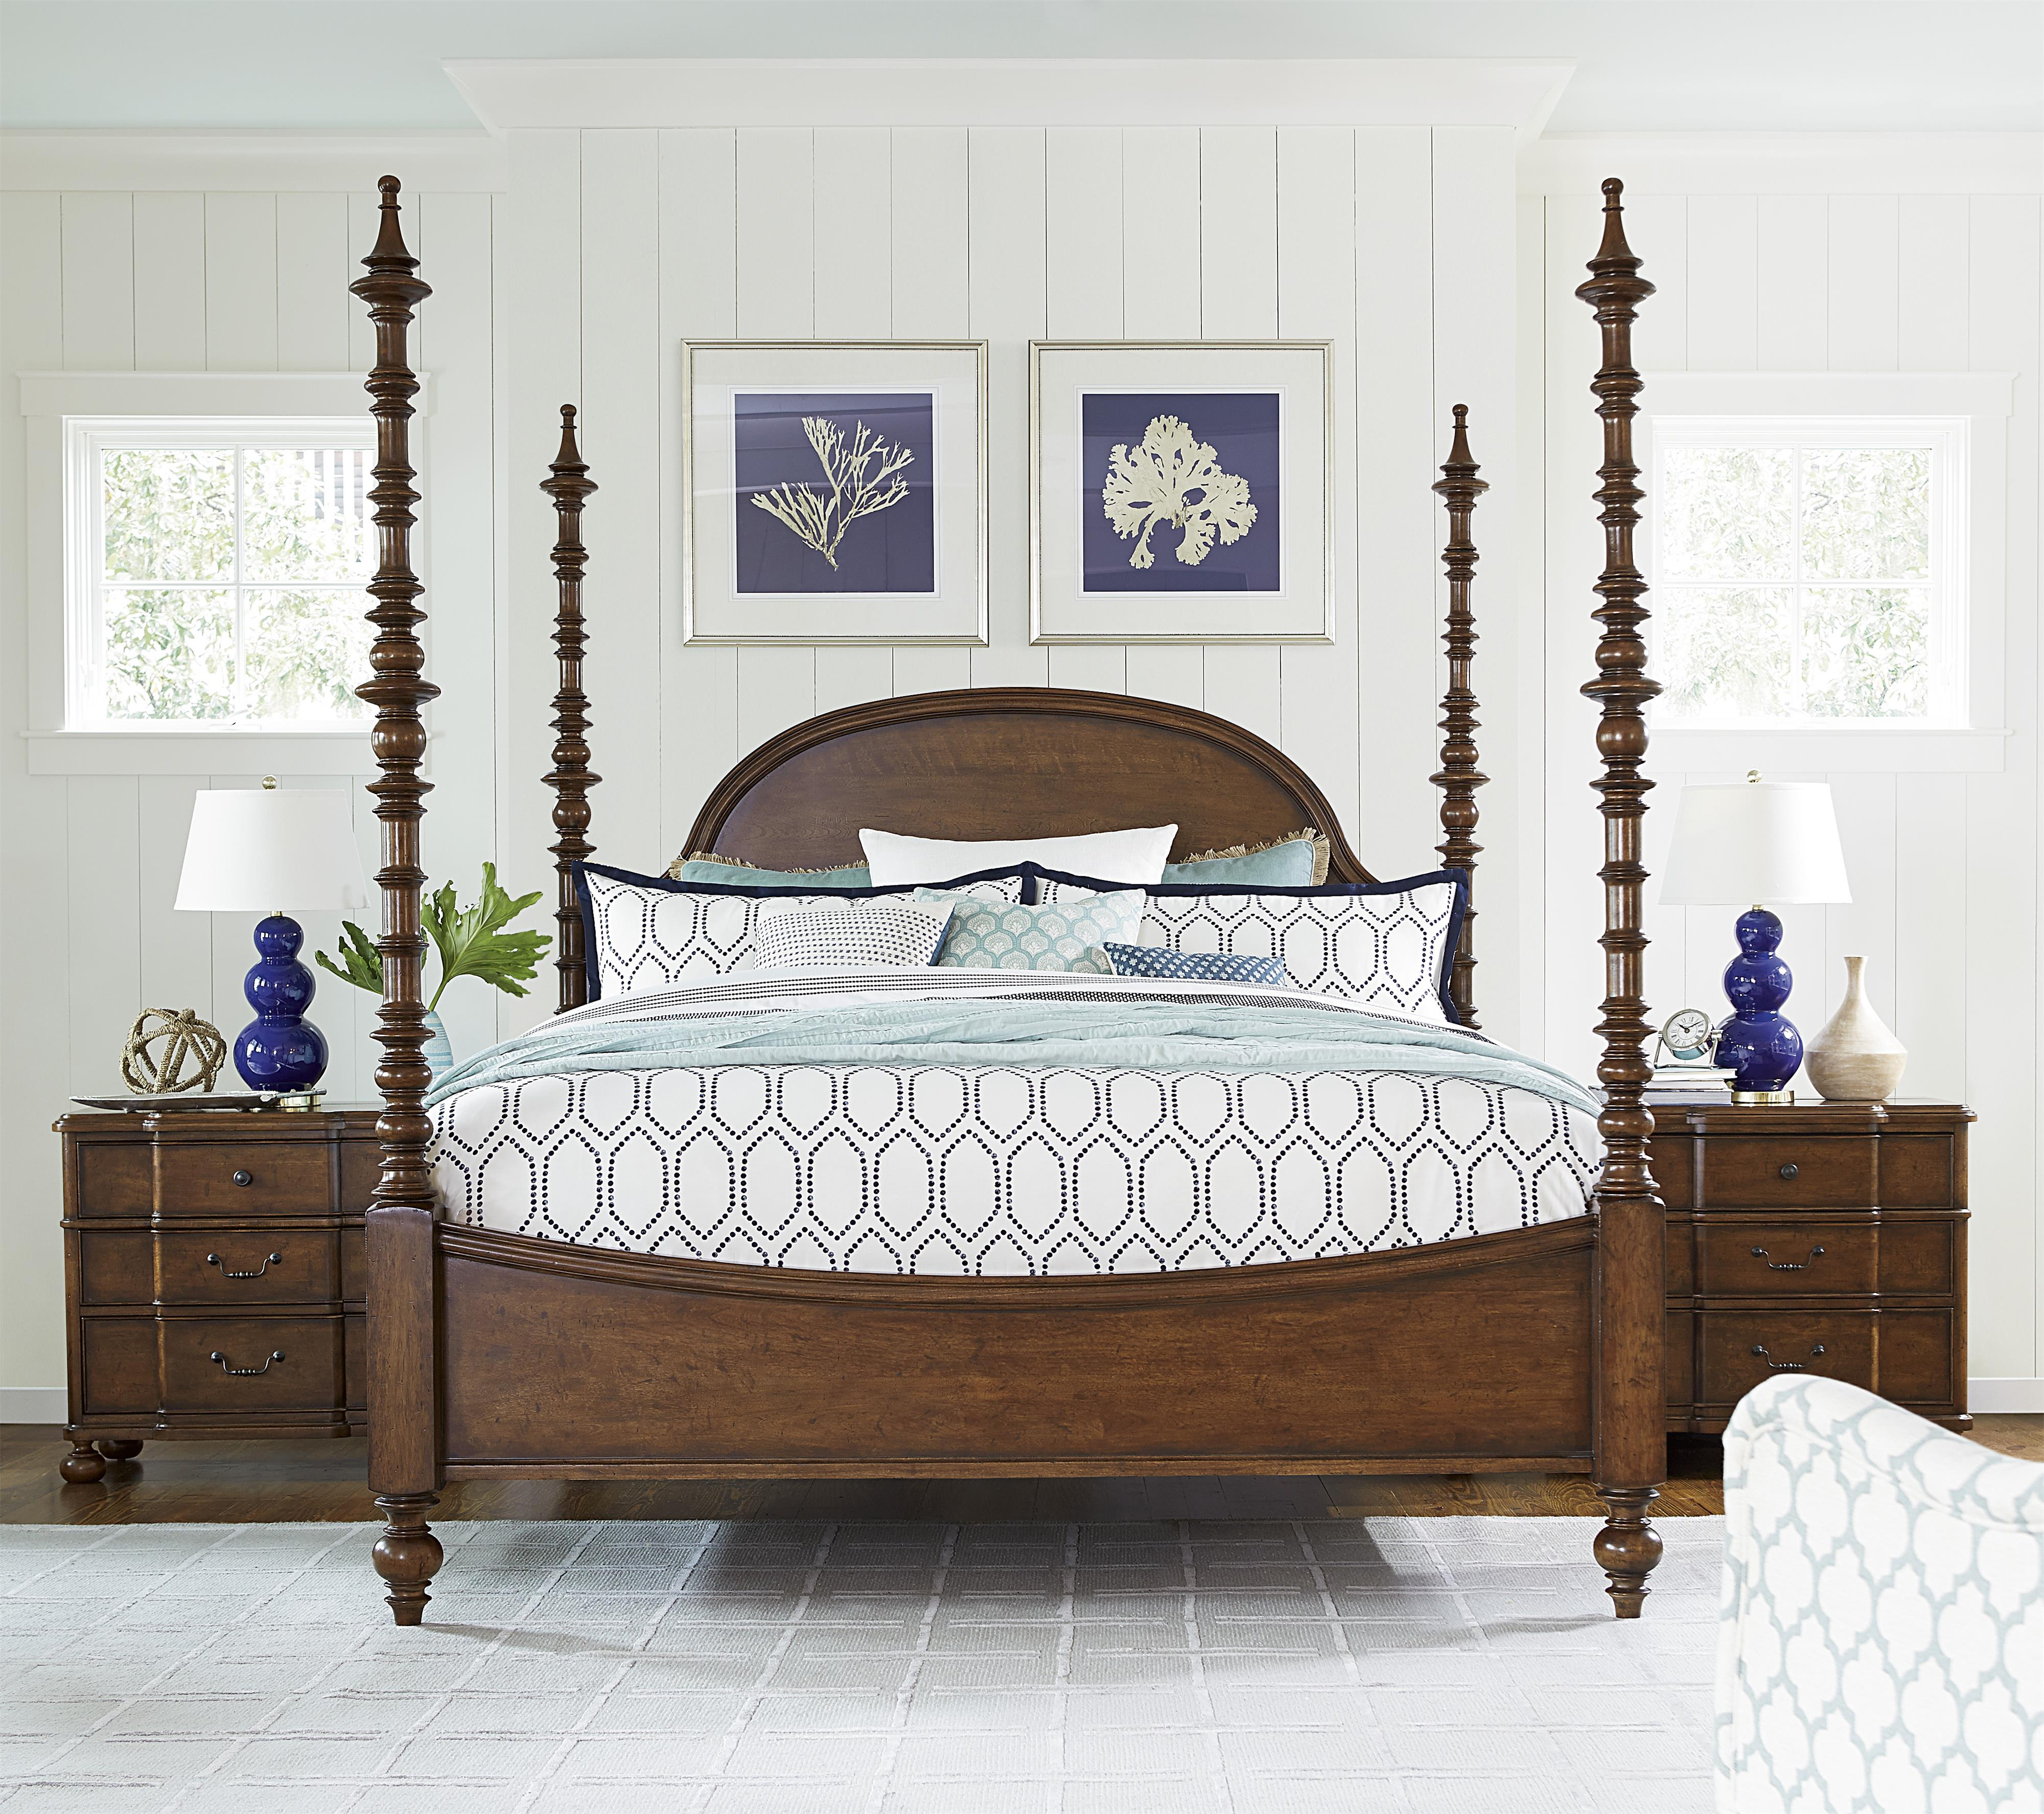 Paula Deen by Universal Dogwood California King Bedroom Group - Item Number: 596 CK Bedroom Group 2